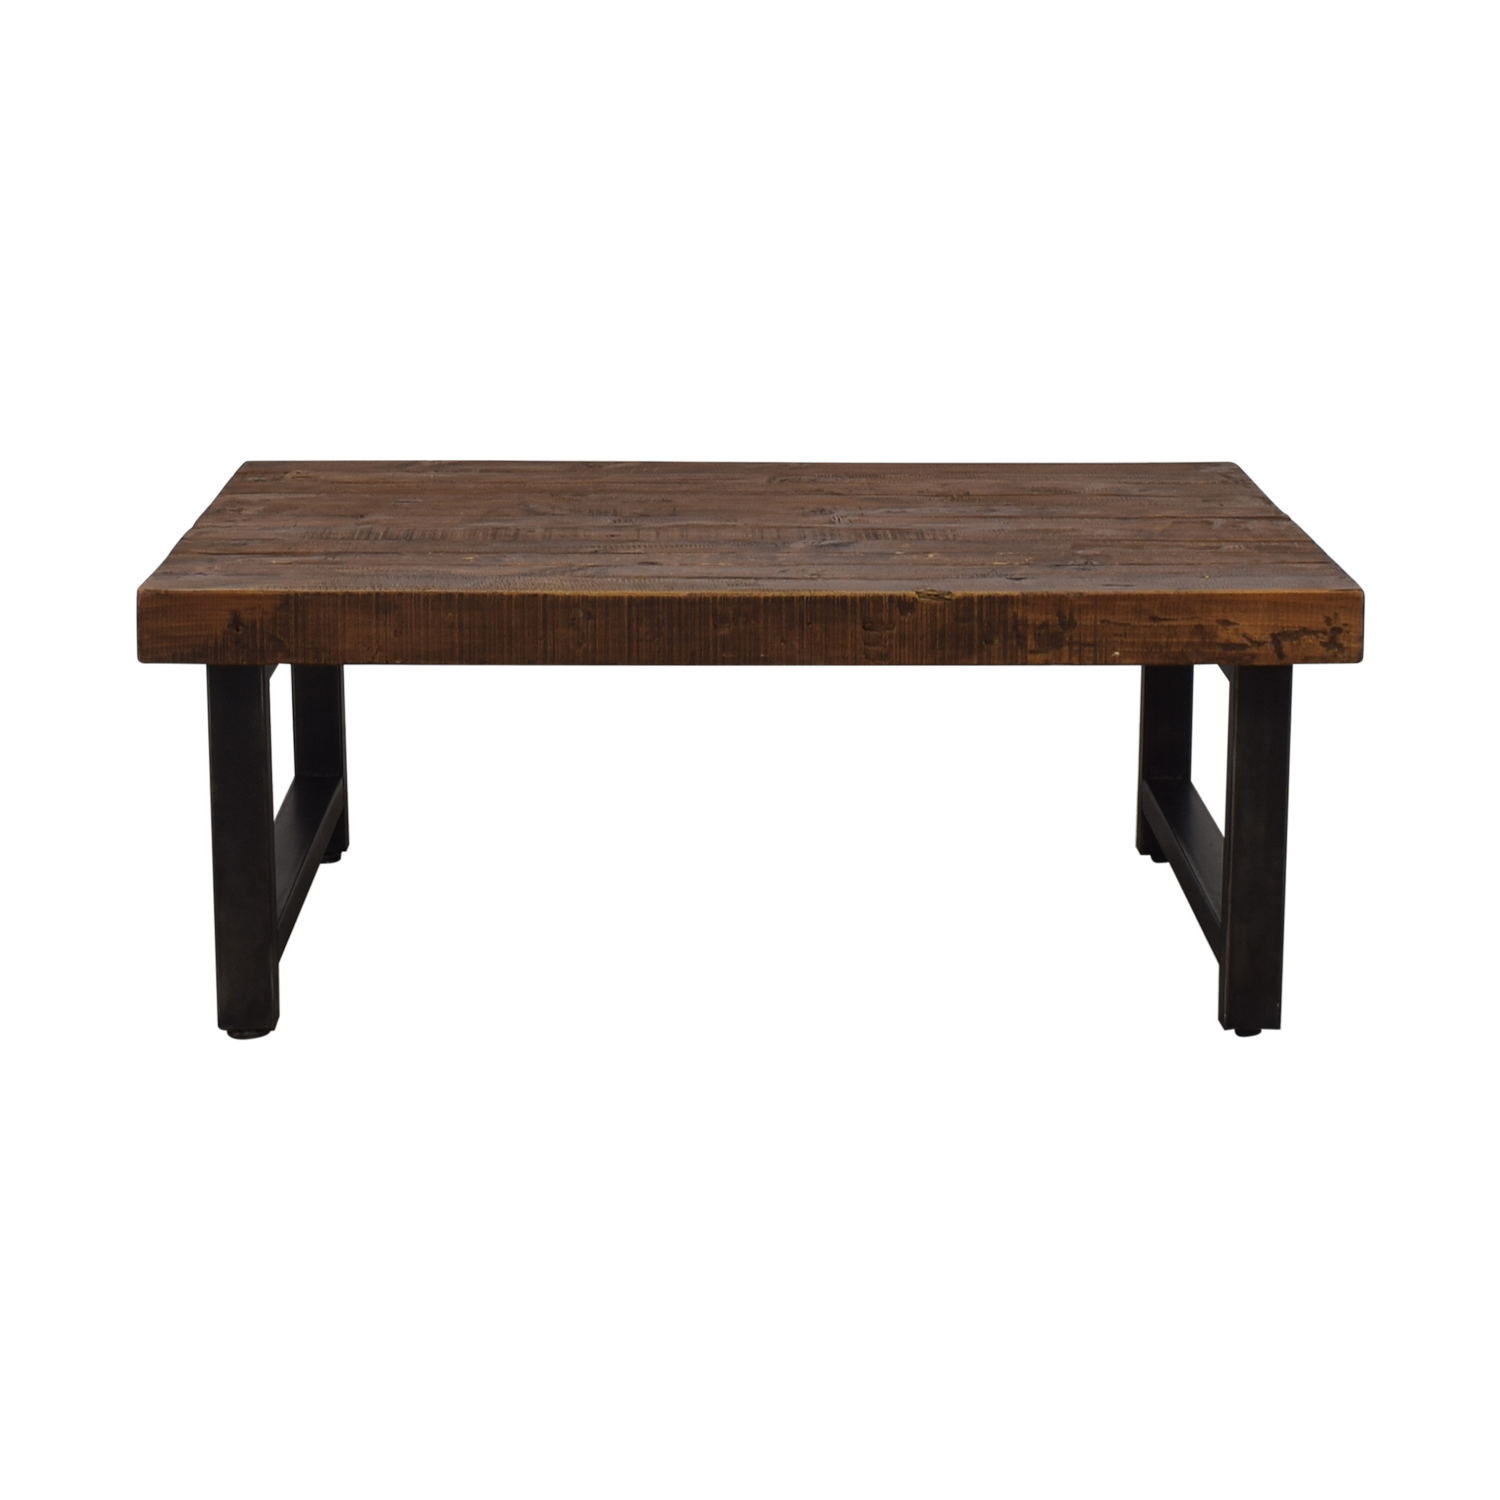 69% Off – Pottery Barn Pottery Barn Griffin Reclaimed Wood Coffee Table / Tables Within 2018 Griffin Reclaimed Wood Dining Tables (View 8 of 25)